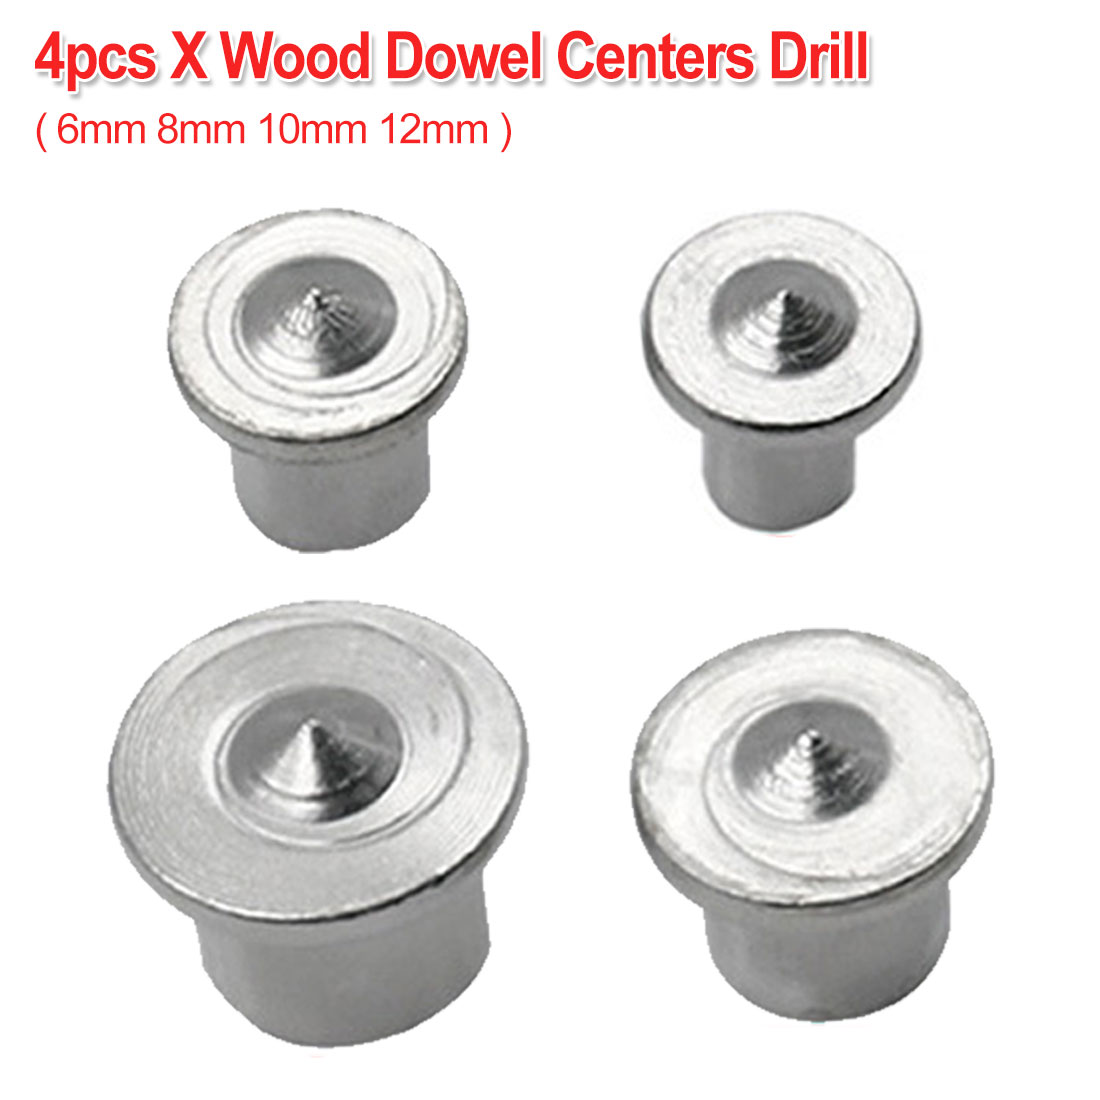 4pcs Dowel Centre Point Pin Set 6mm 8mm 10mm 12mm Dowel Tenon Center Set Woodworking Tool Transfer Plug Wood Drill Power Tool